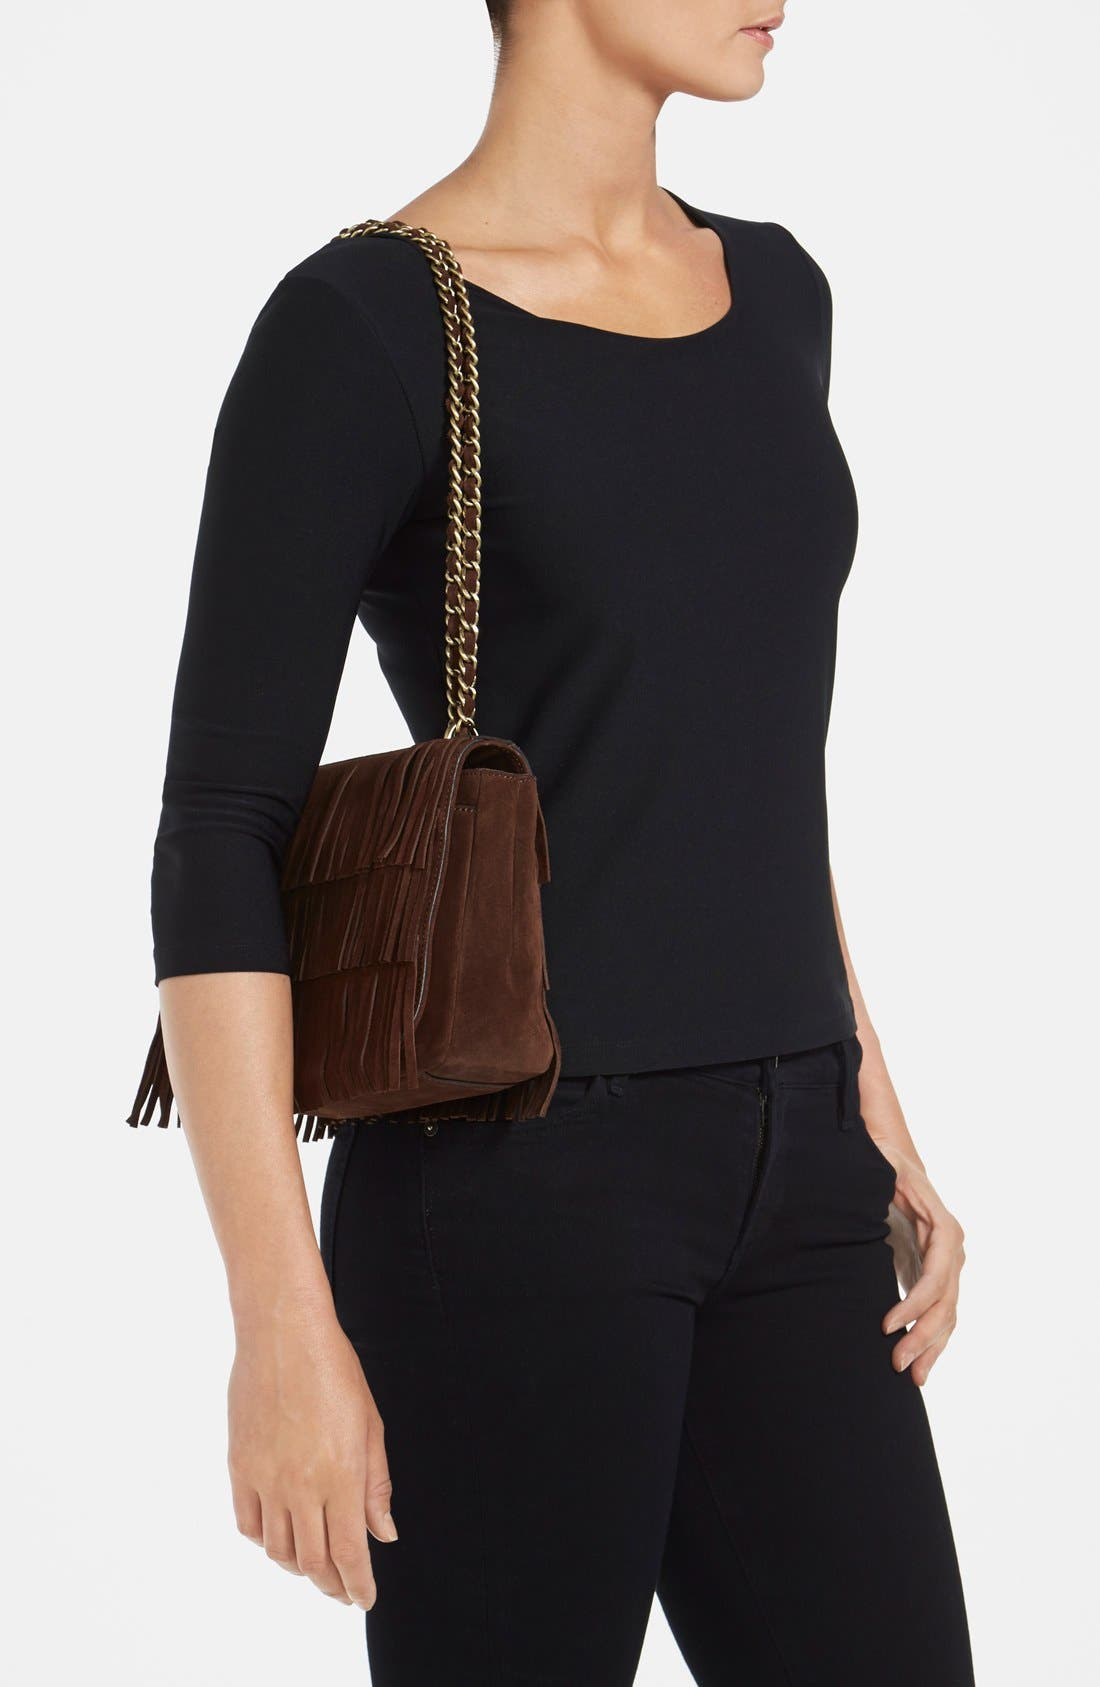 TORY BURCH,                             Fringe Shoulder Bag,                             Alternate thumbnail 3, color,                             201